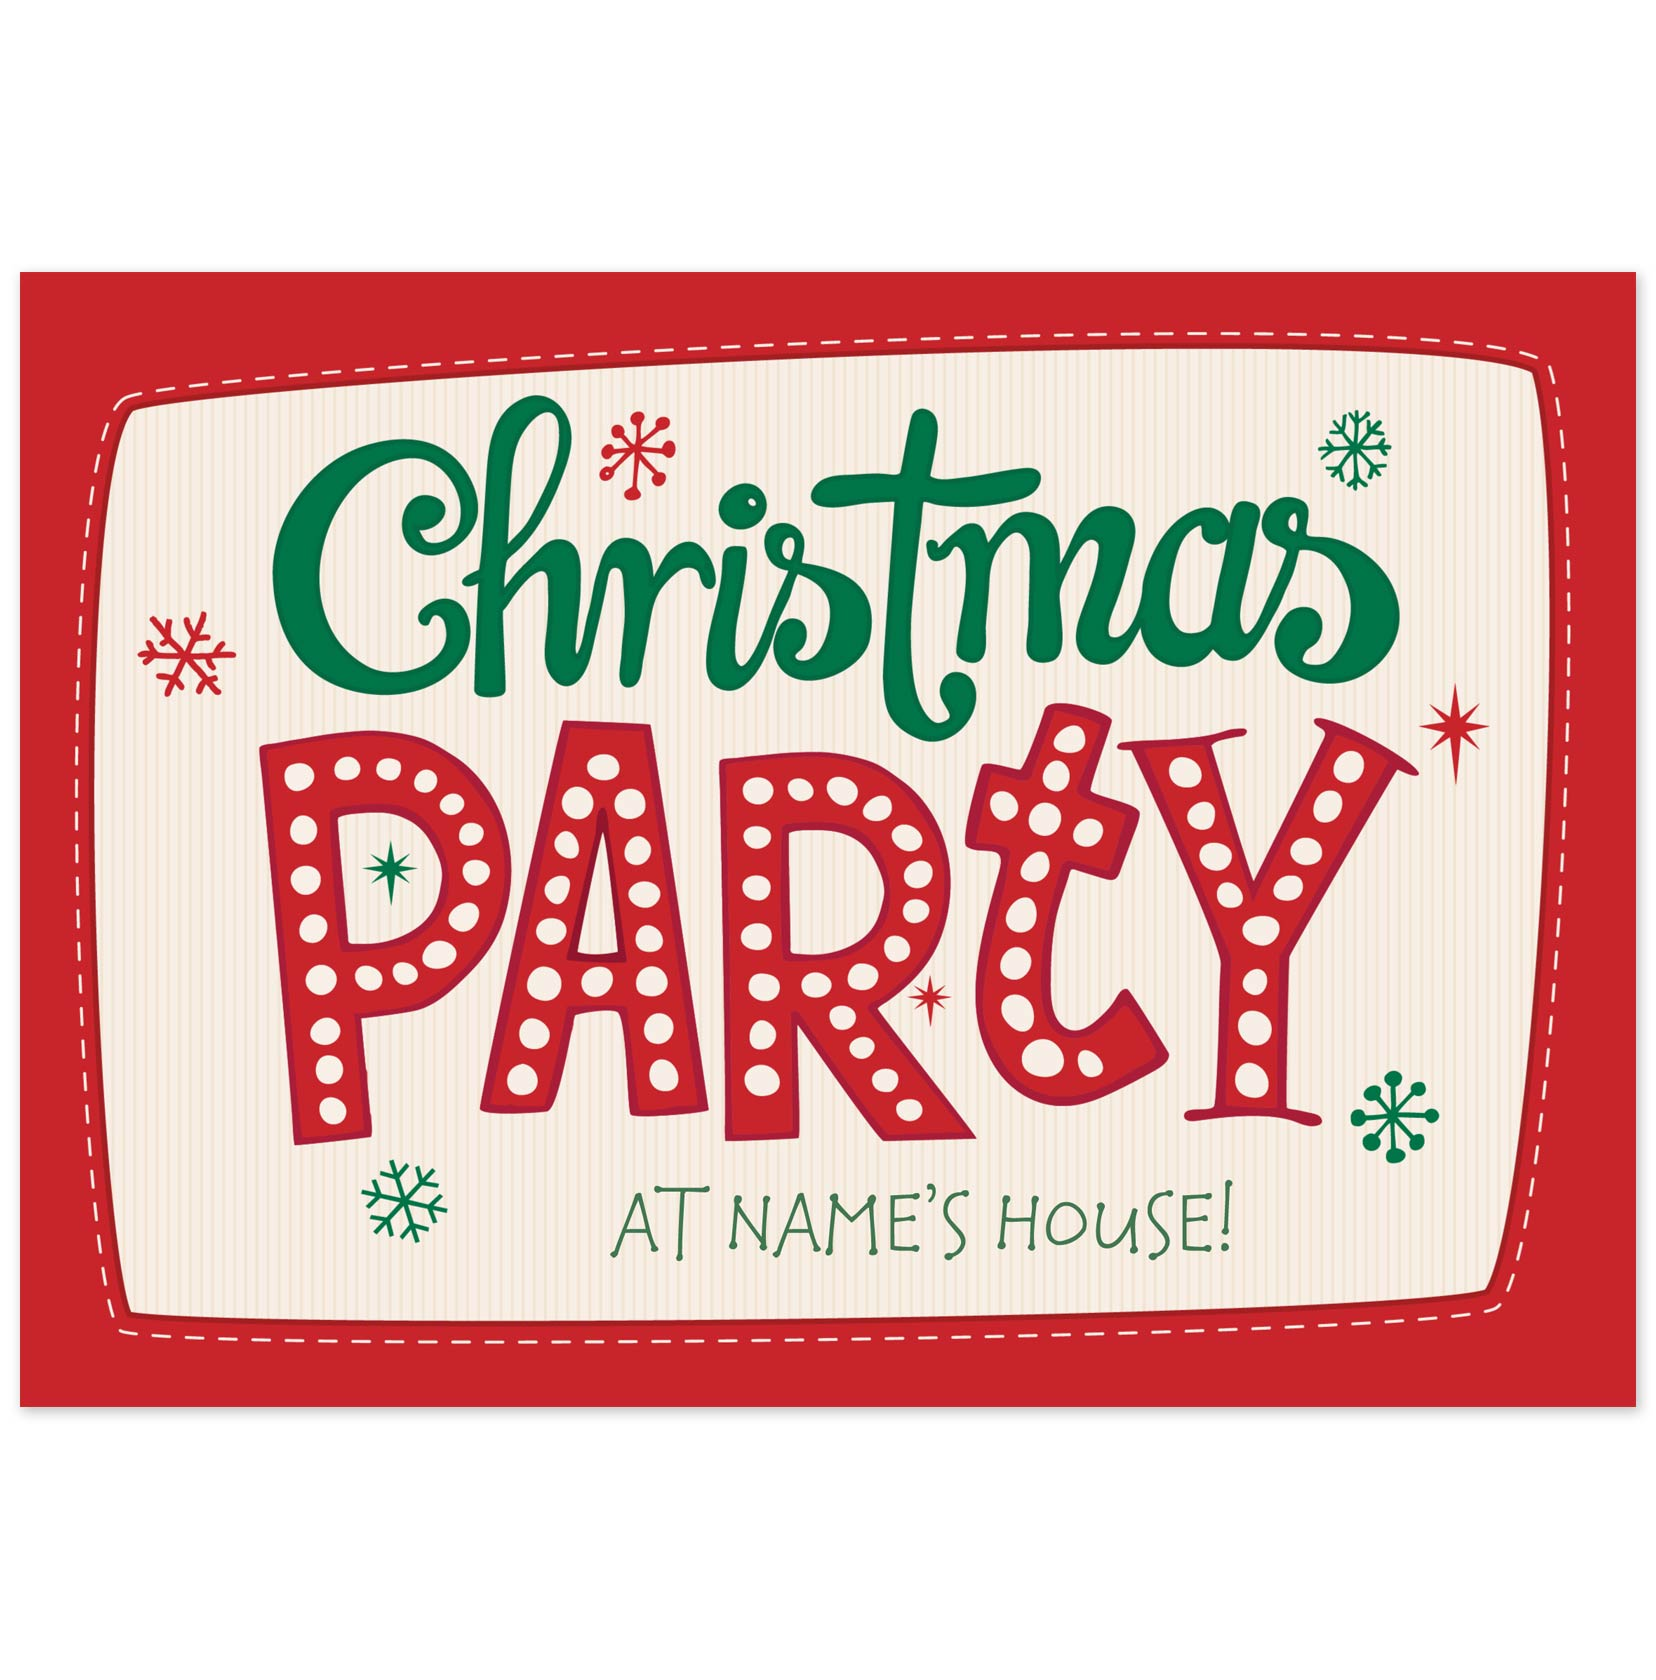 Text clipart christmas party Christmas invitations inspiration invitation free